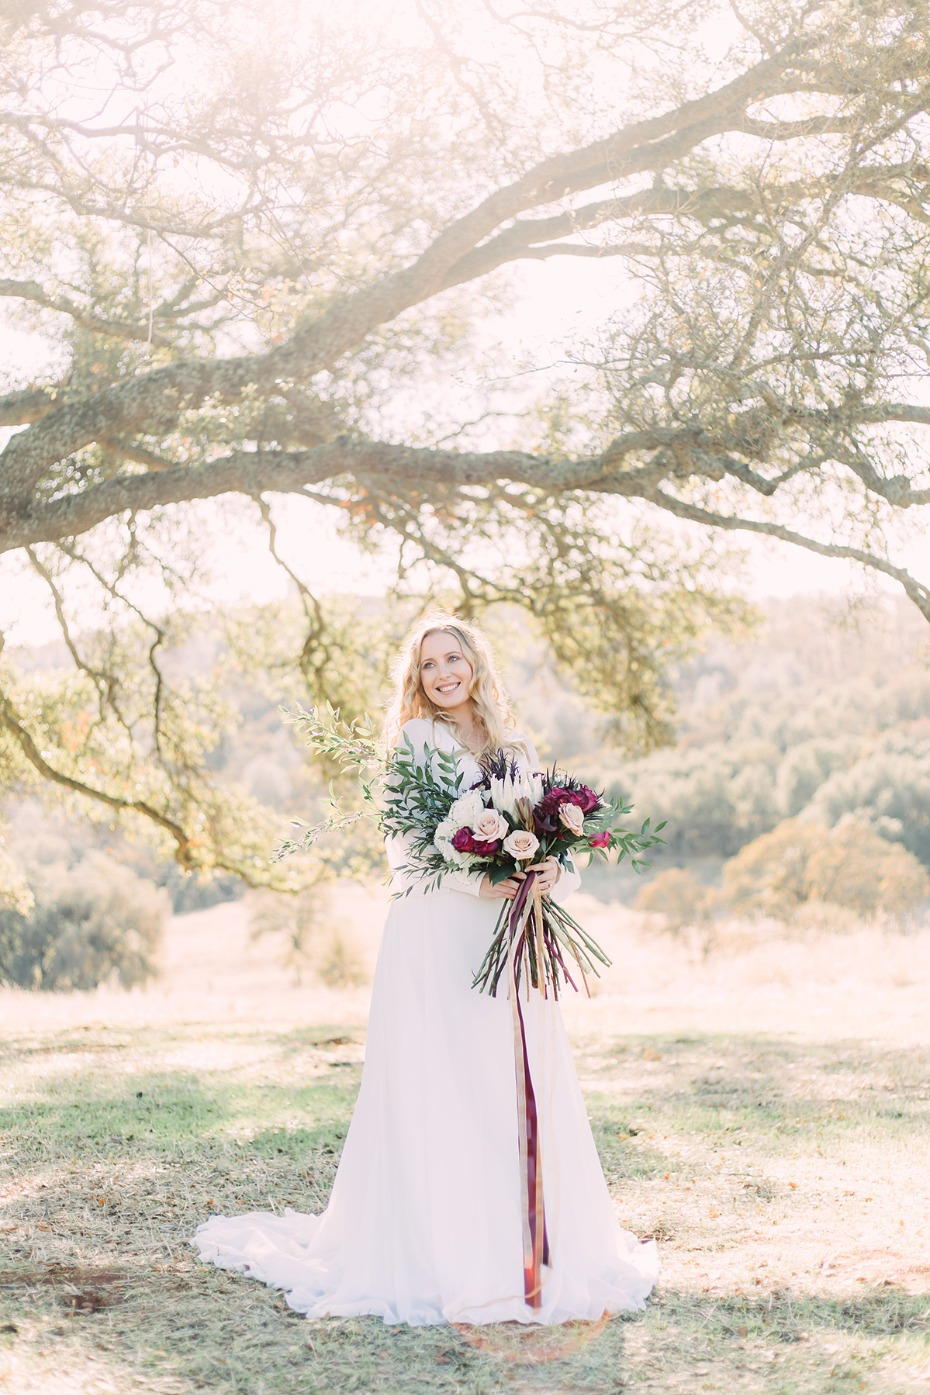 Sun drenched boho bridal look